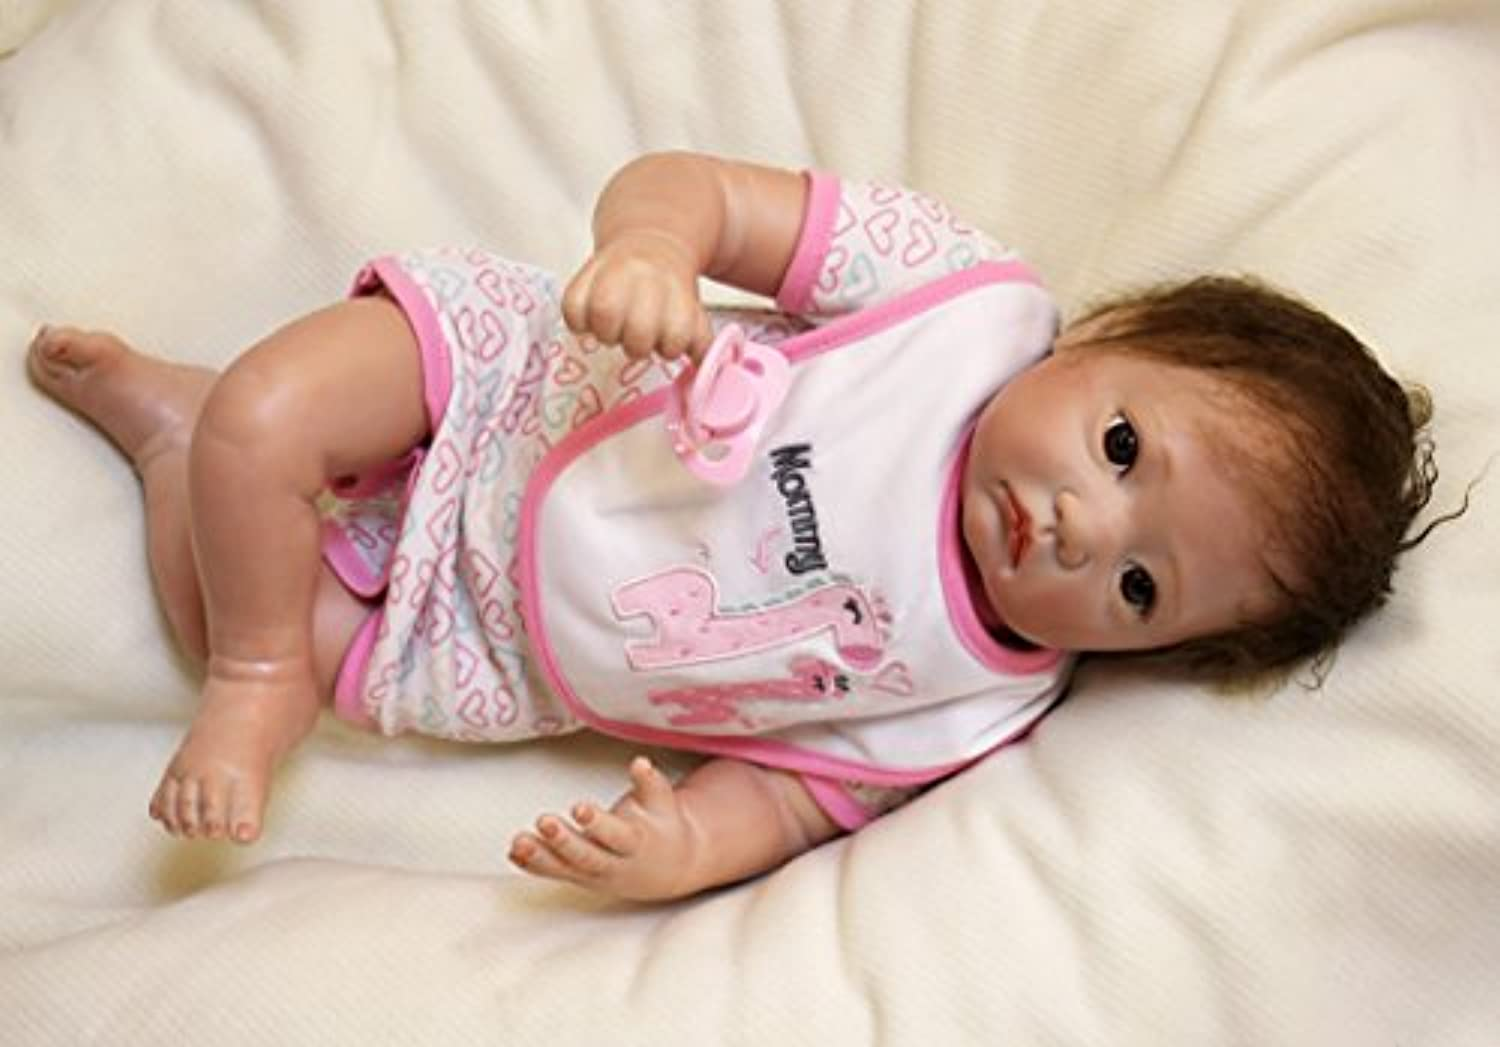 So Realistic Reborn Babies人形ソフトビニールFake Preemie Girl Look Real Rootedモヘアインタラクティブ子供玩具、20インチ